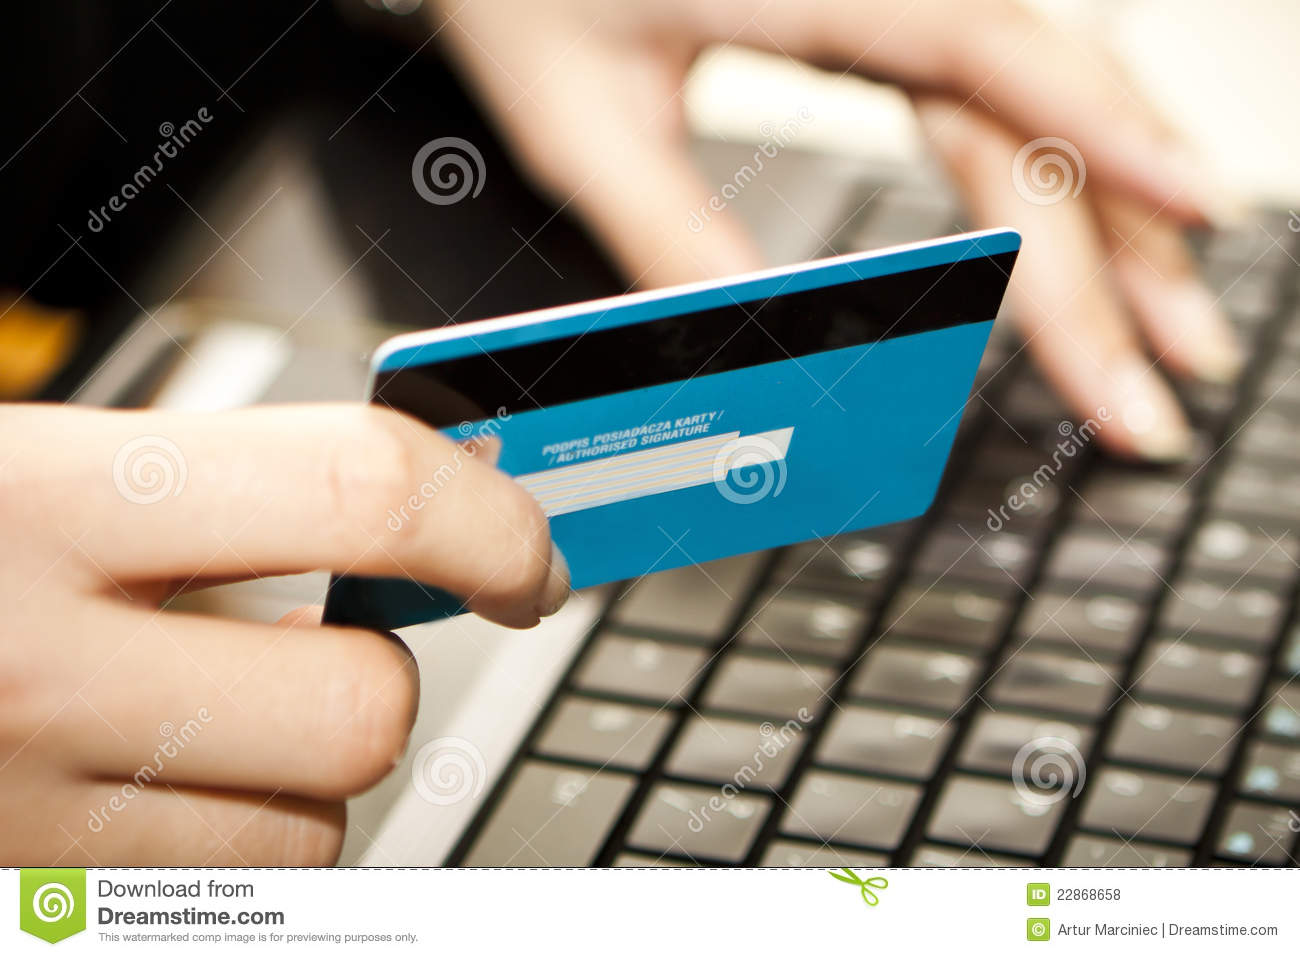 An online payment gateway connects your store and your merchant service account, and facilitates the processing of the payment transaction between the various parties involved, including your bank and the card issuer's bank.